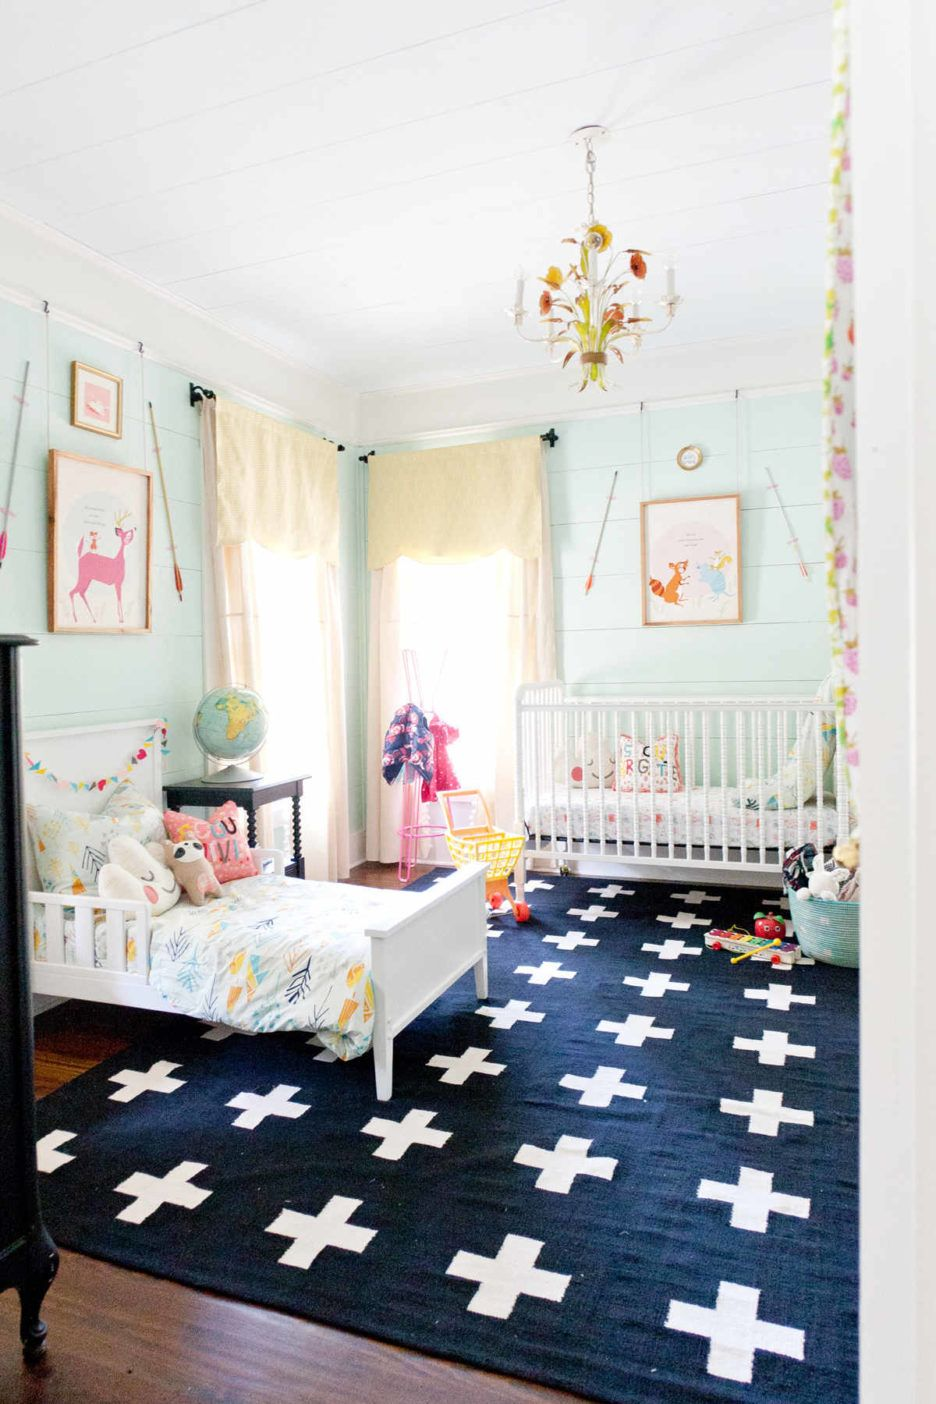 Ikea Shared Kids Bedroom Ideas With Wooden Single Ikea Toddler Bed